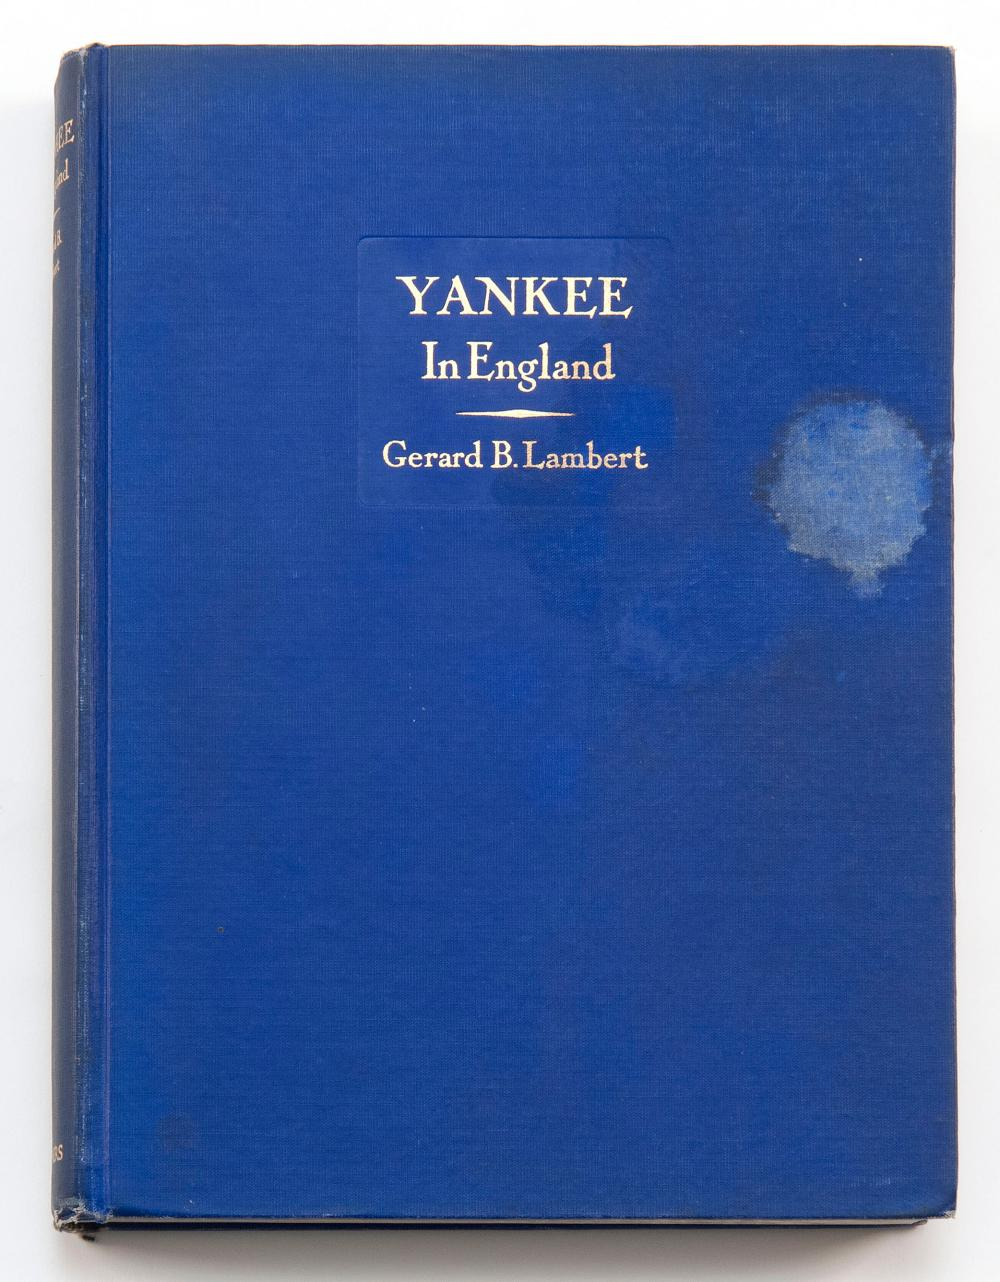 VOLUME ON YACHTING Yankee in England by Gerard B. Lambert ( N.Y. and London: Charles Scribner's Sons, 1937). Covers the author's par.